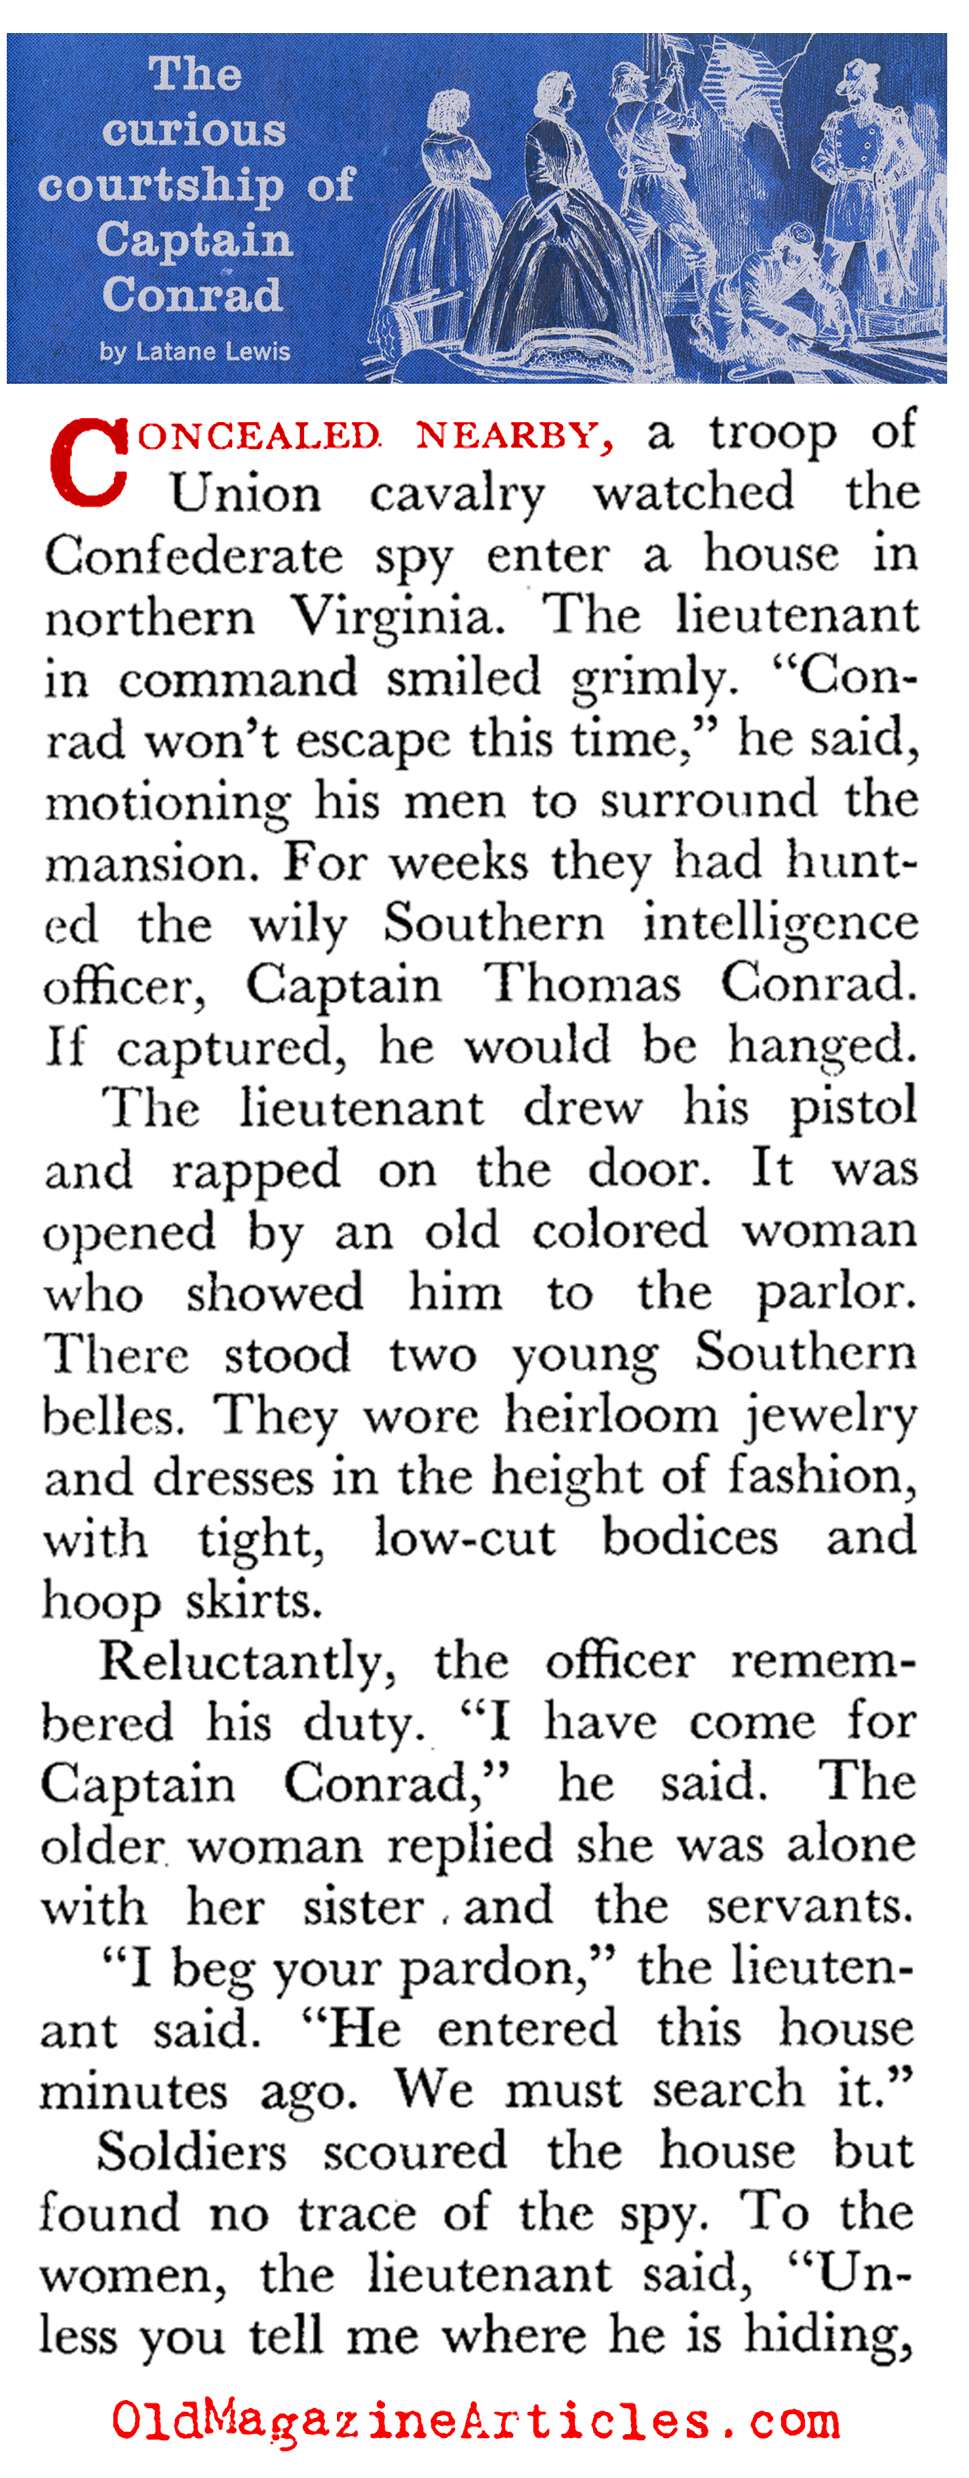 The Life-Saving Capabilities of Victorian Fashion (Coronet Magazine, 1960)